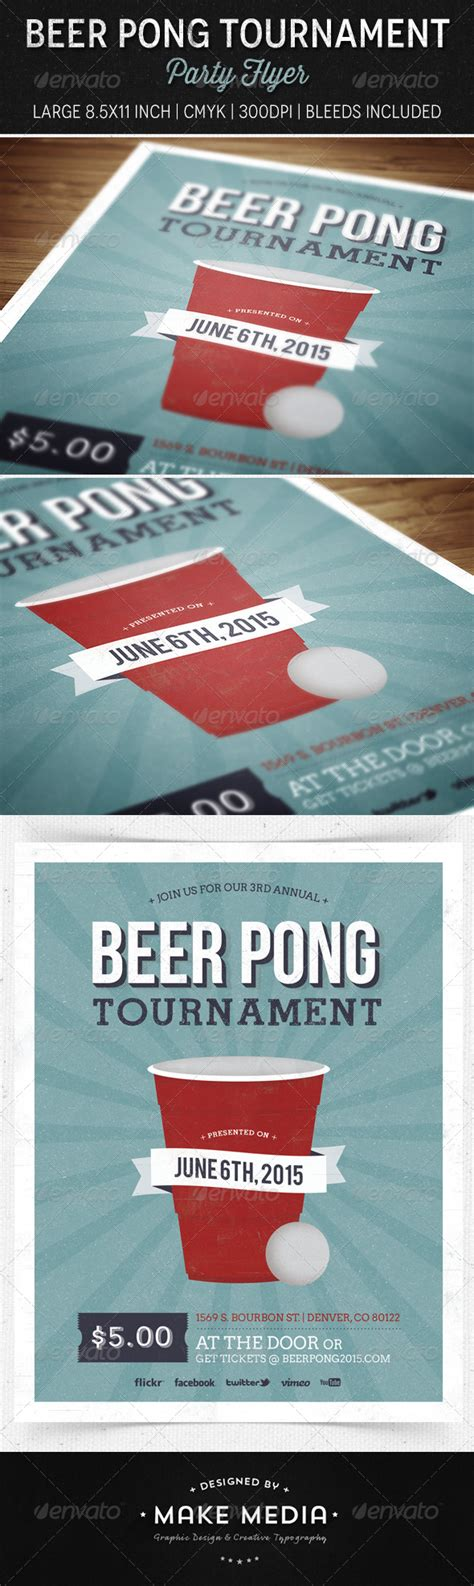 Beer Pong Tournament Flyer Free Psd 187 Tinkytyler Org Stock Photos Graphics Ping Pong Tournament Flyer Template